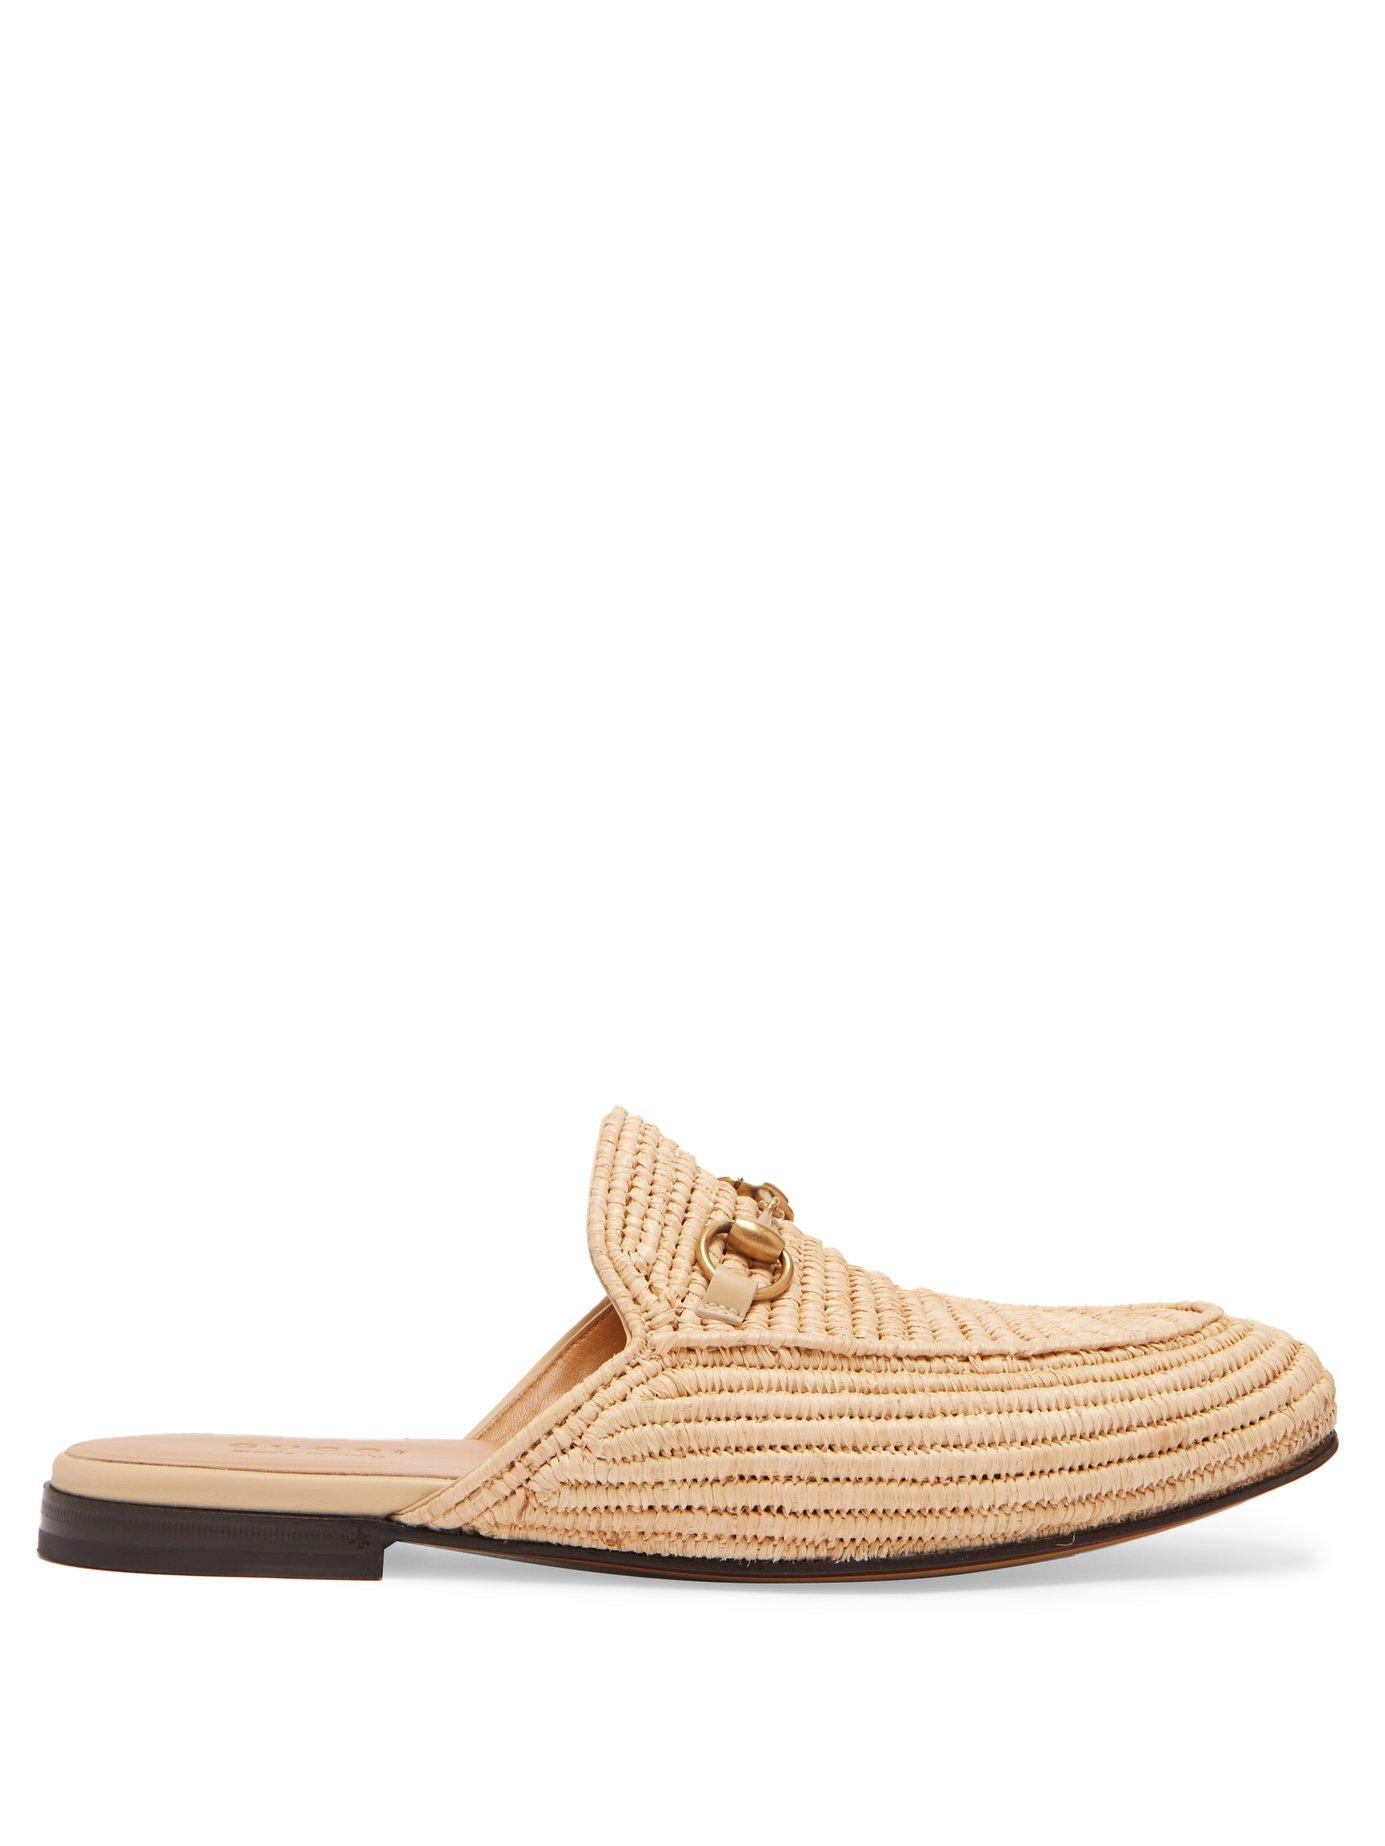 9a6e29a1a Gucci Princetown Raffia Backless Loafers In Neutrals | ModeSens